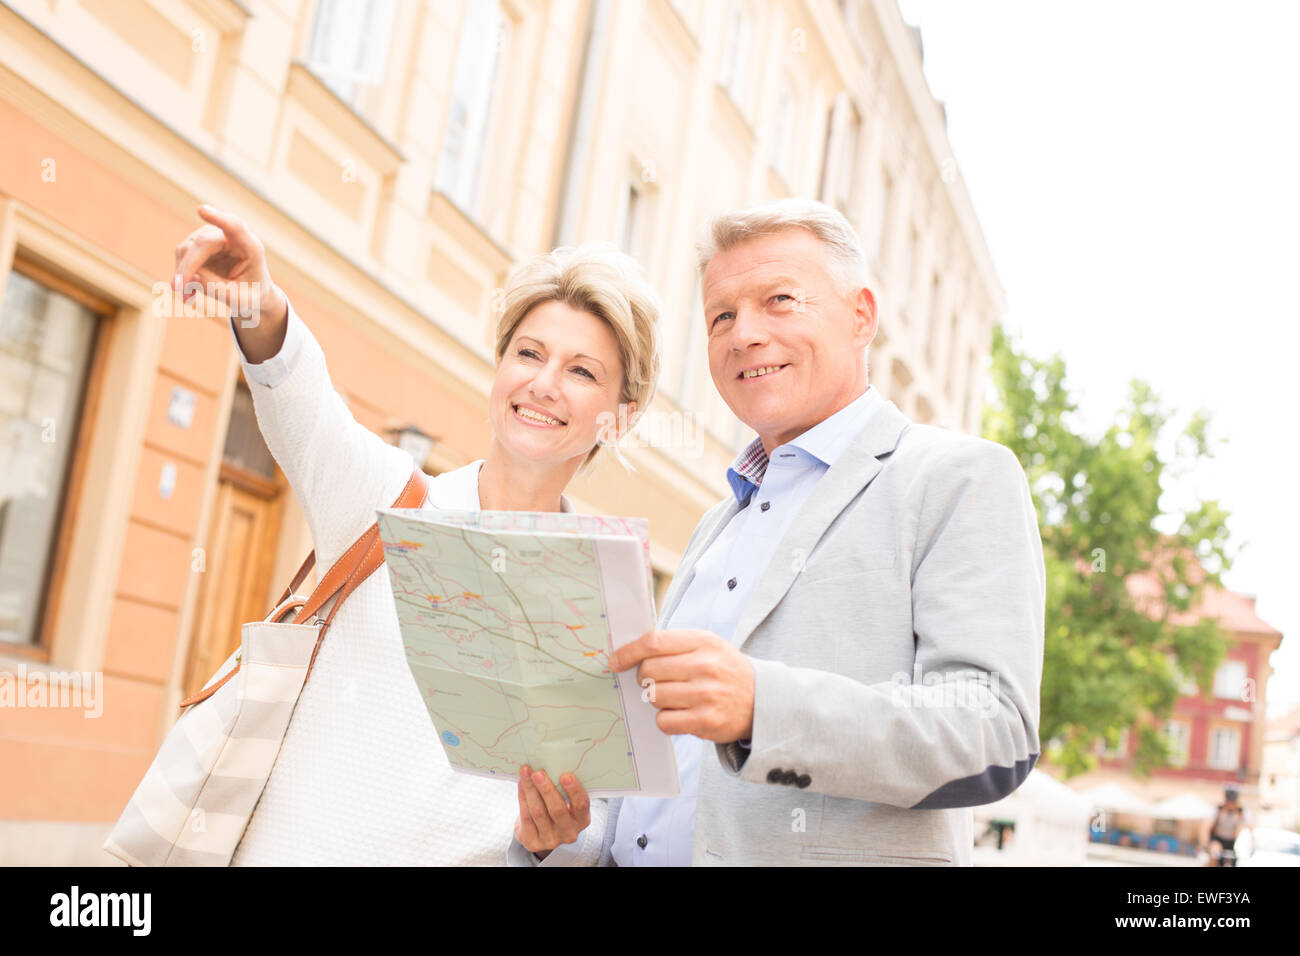 Middle-aged woman showing something to man with road map in city - Stock Image